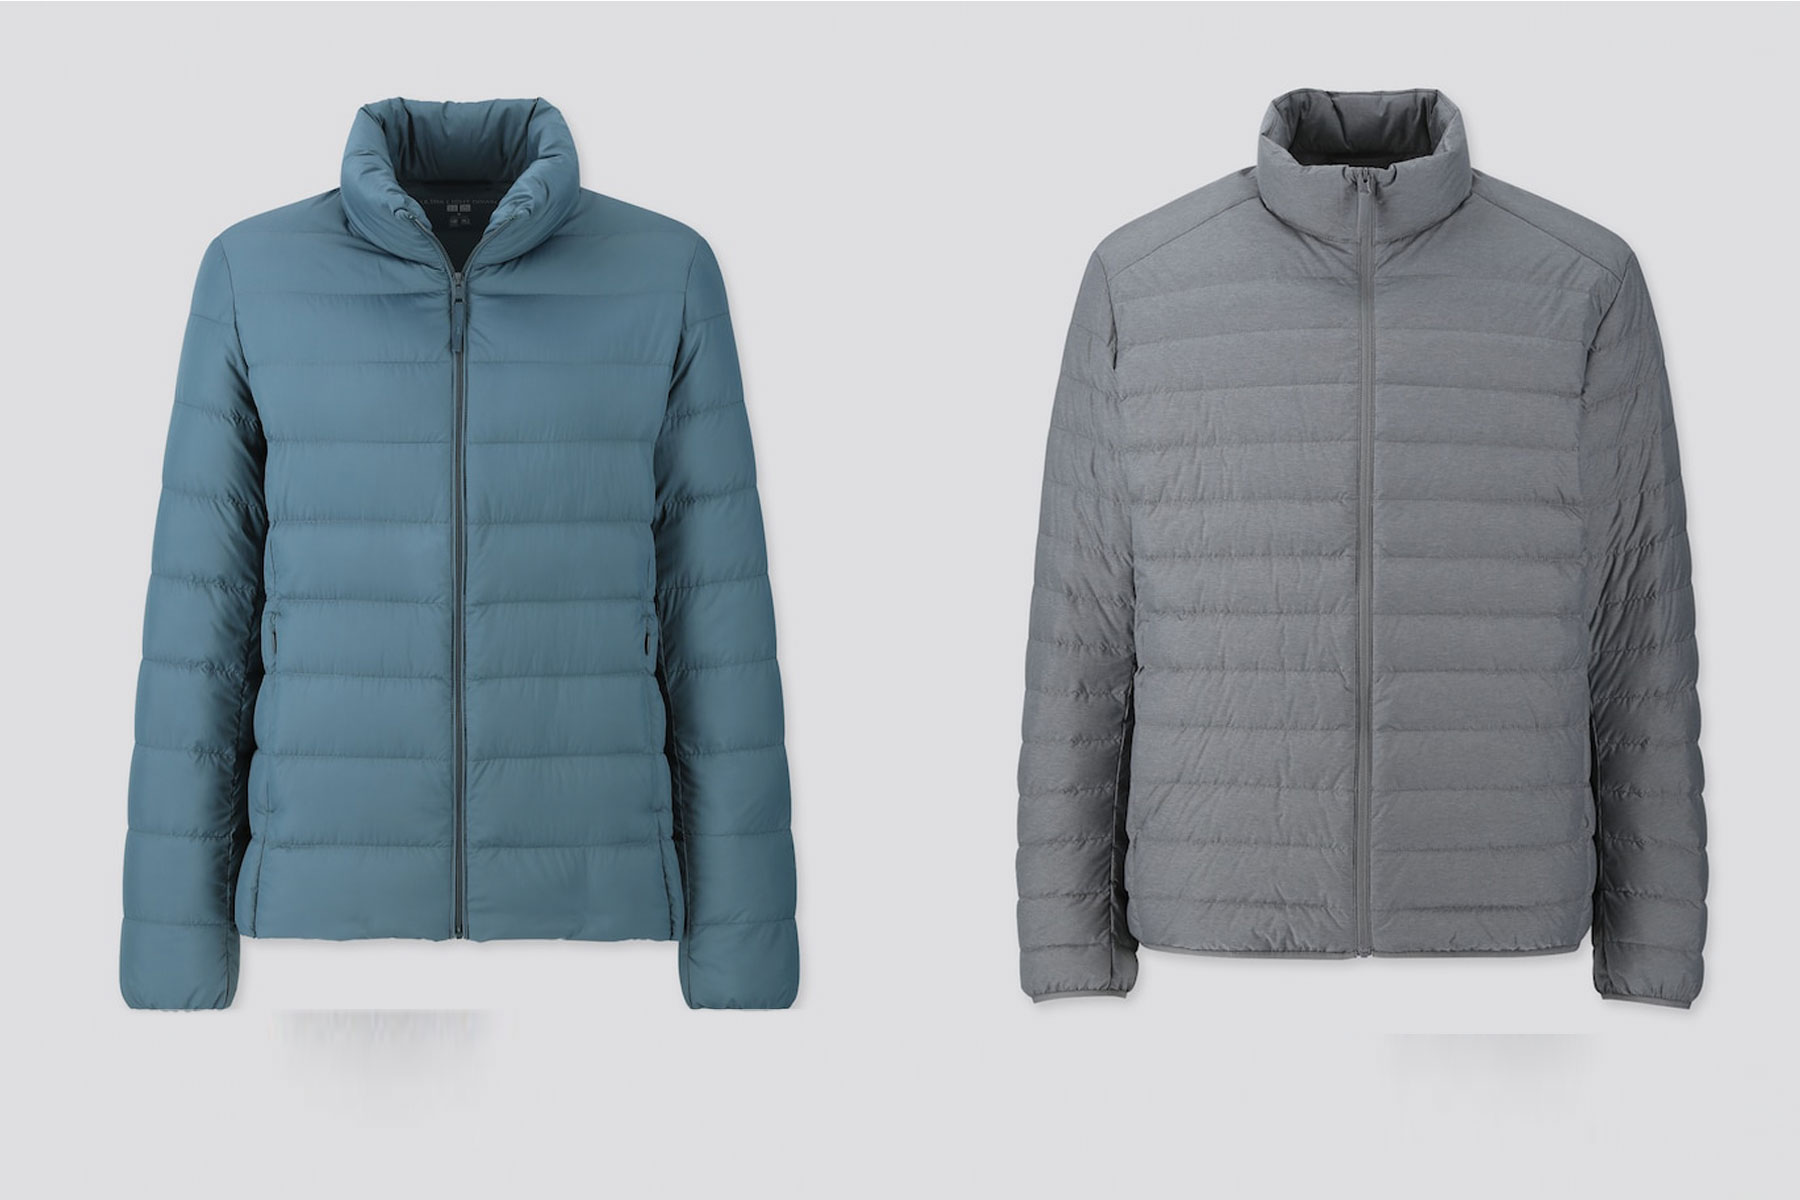 Blue and grey puffer jackets